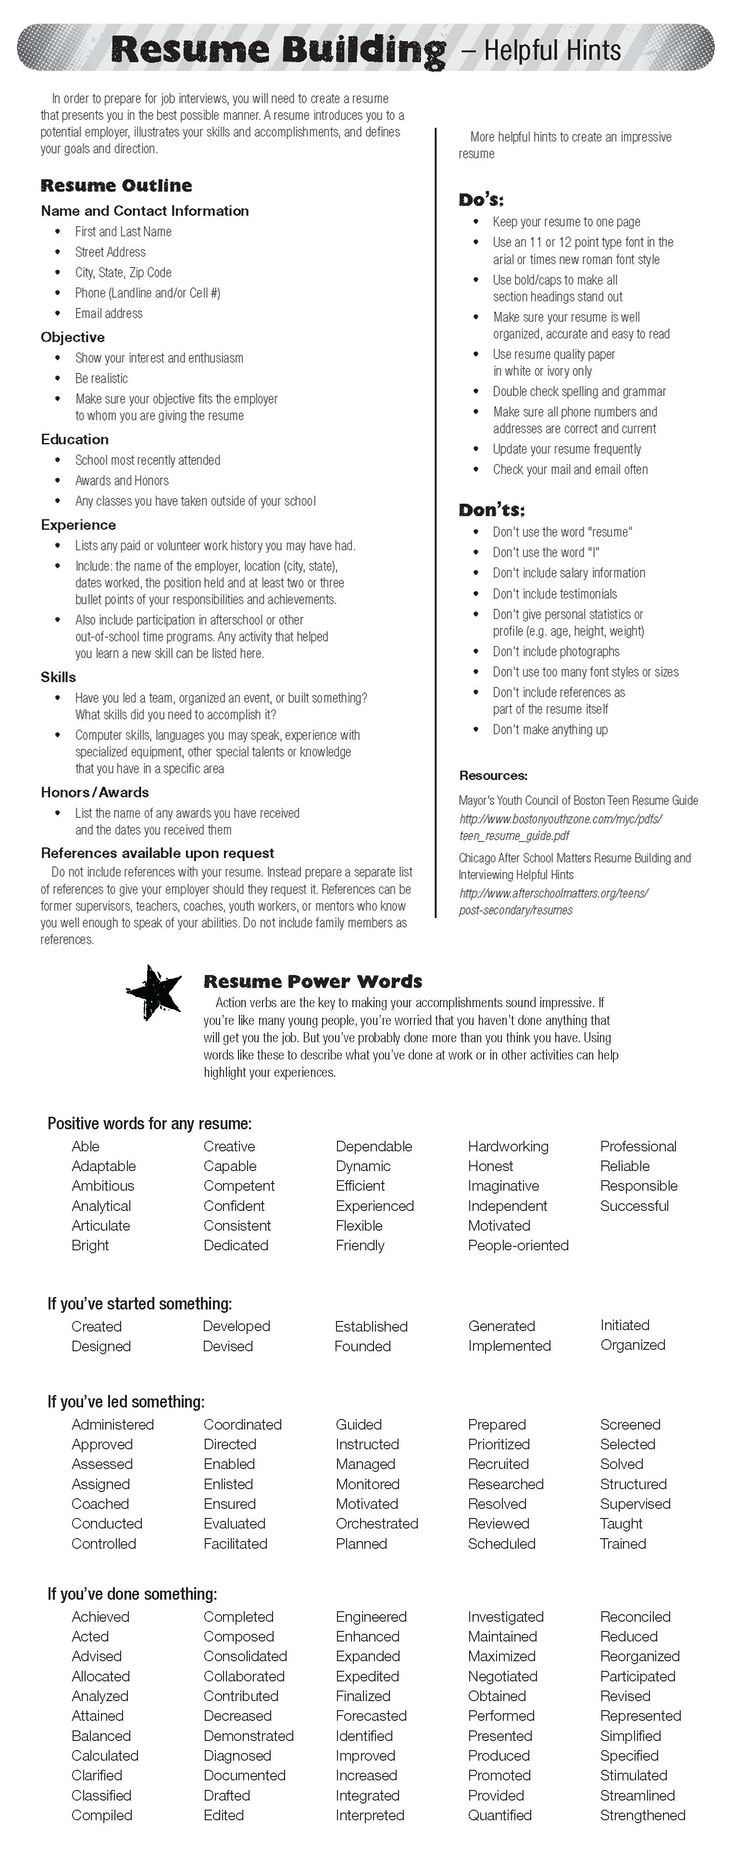 Picnictoimpeachus  Outstanding  Ideas About Resume On Pinterest  Cv Format Resume Cv And  With Goodlooking  Ideas About Resume On Pinterest  Cv Format Resume Cv And Resume Templates With Beauteous Graduate Nurse Resume Also Server Job Description Resume In Addition Examples Of Resumes For Jobs And Free Resume Examples As Well As Hospitality Resume Additionally Resume Format Samples From Pinterestcom With Picnictoimpeachus  Goodlooking  Ideas About Resume On Pinterest  Cv Format Resume Cv And  With Beauteous  Ideas About Resume On Pinterest  Cv Format Resume Cv And Resume Templates And Outstanding Graduate Nurse Resume Also Server Job Description Resume In Addition Examples Of Resumes For Jobs From Pinterestcom